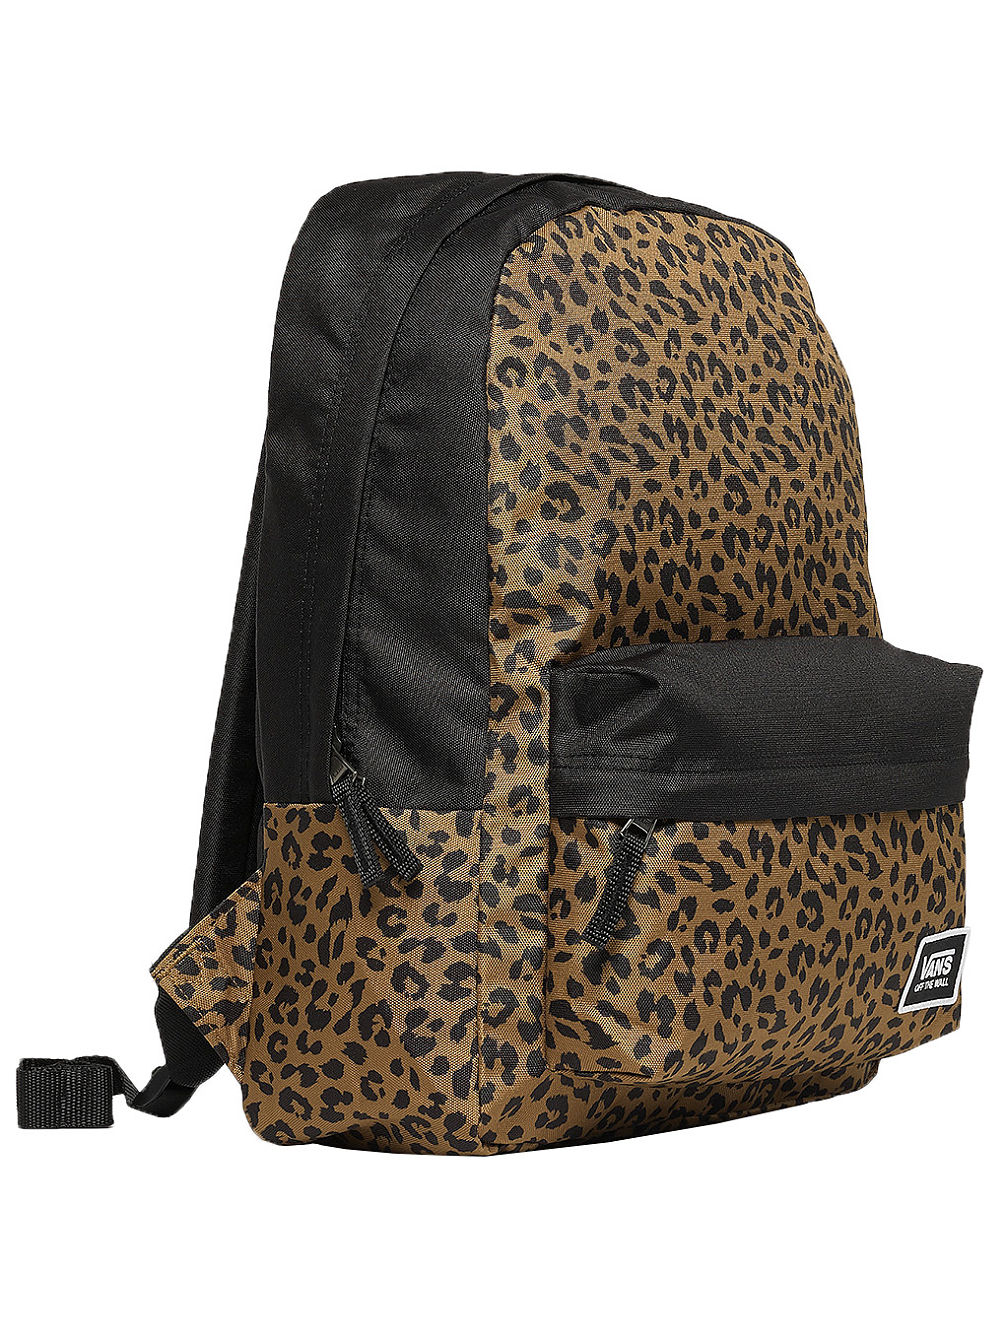 7c2a9462b7 Buy Vans Realm Classic Backpack online at Blue Tomato